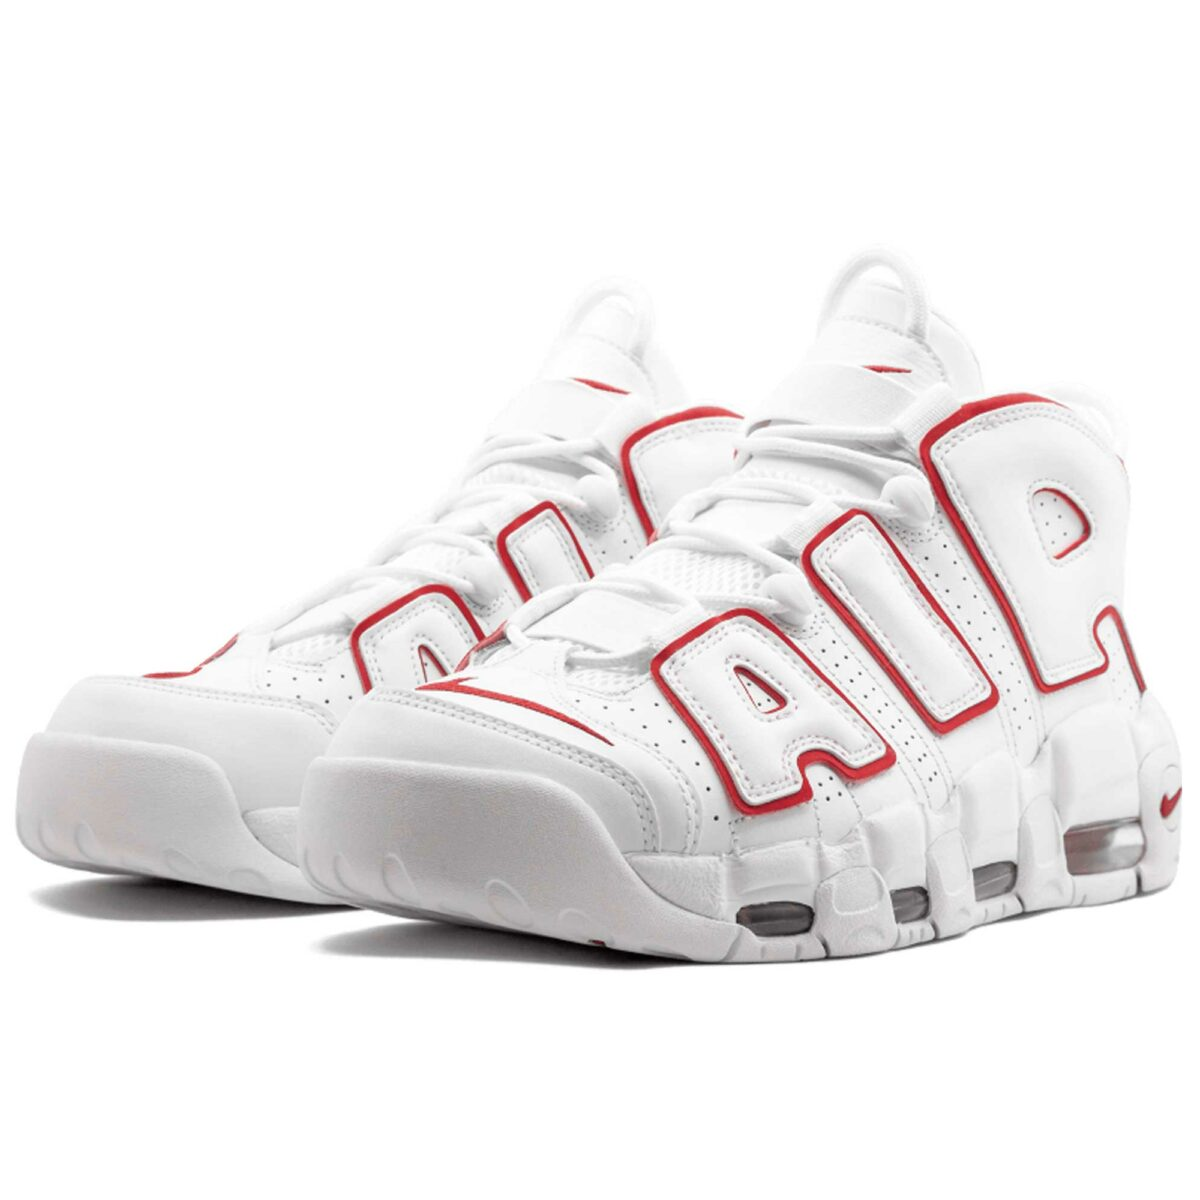 nike air more uptempo varsity red white 921948_102 купить